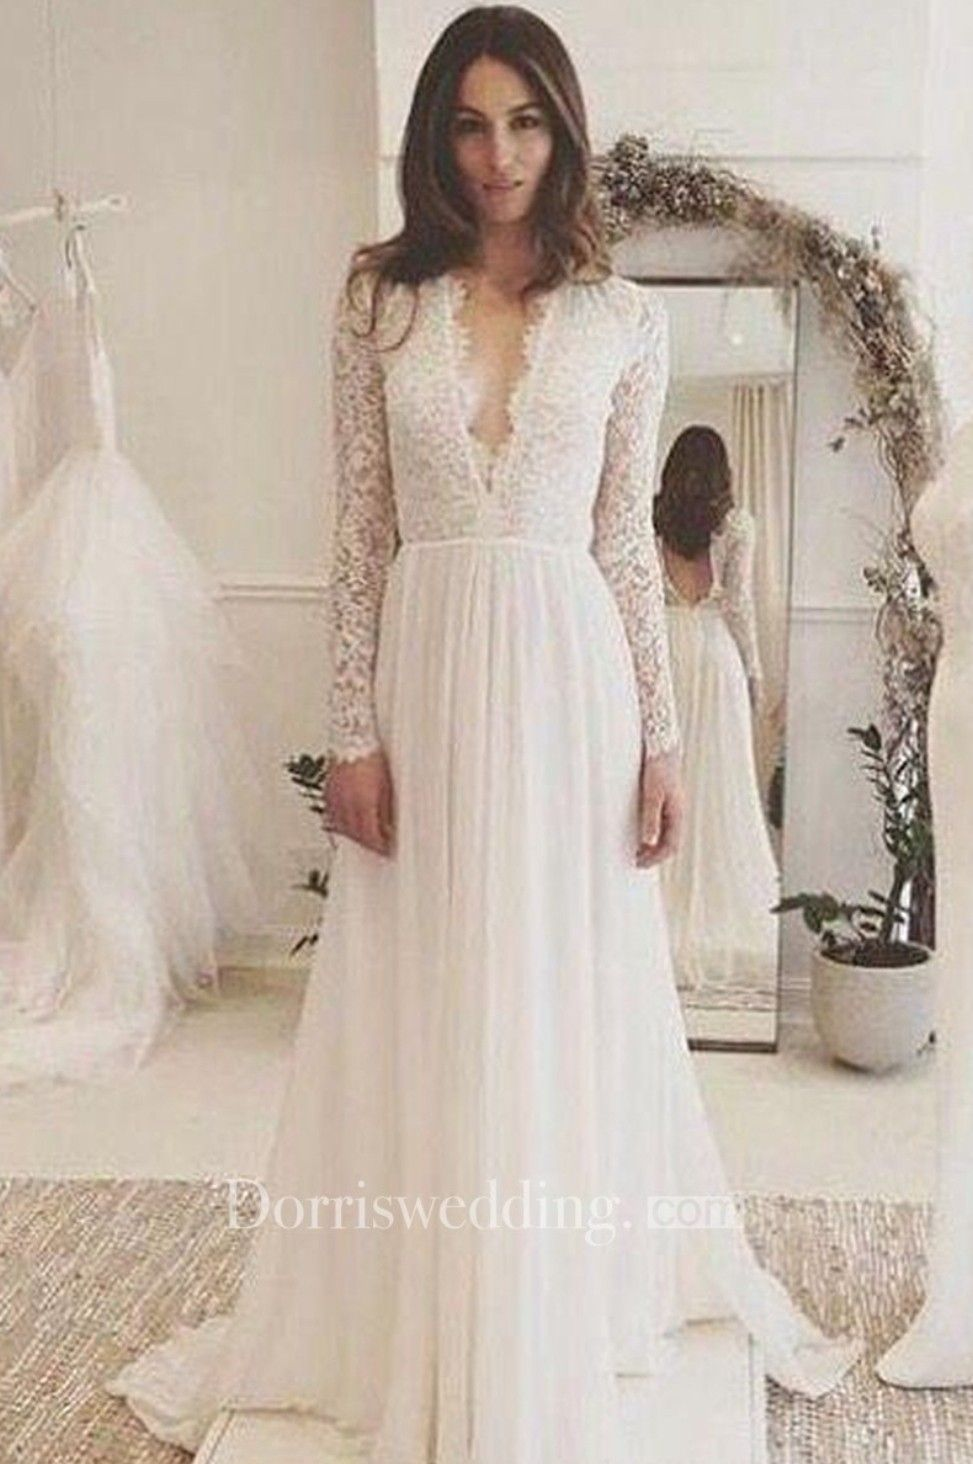 d6c07f80d34c Buy Elegant Mermaid Scoop Neck Tulle Beads Lace Appliques Chapel Train Long  Sleeve Wedding Dress in uk.Shop our beautiful collection of unique and ...